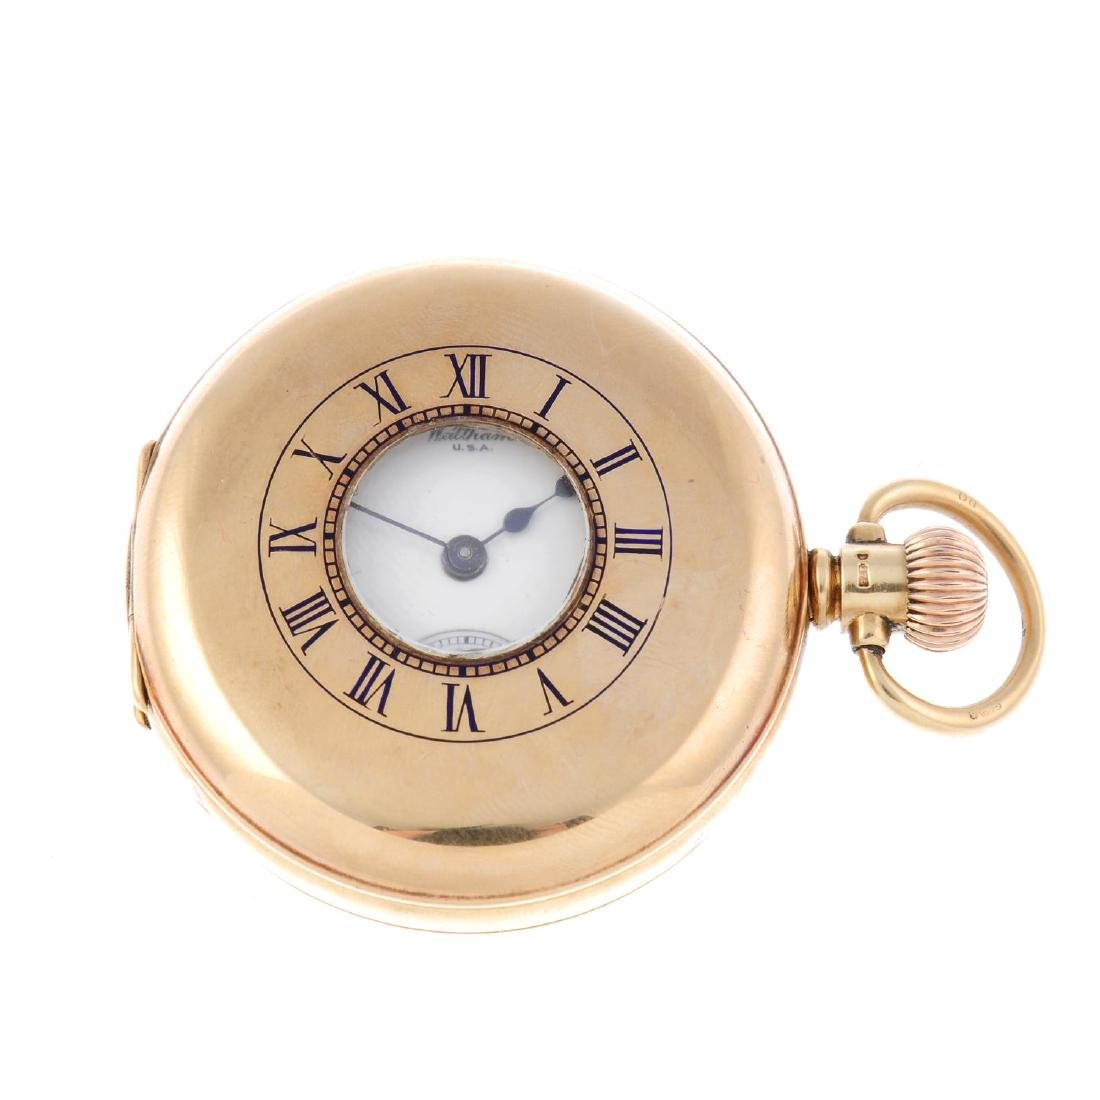 A half hunter pocket watch by Waltham. 9ct yellow gold